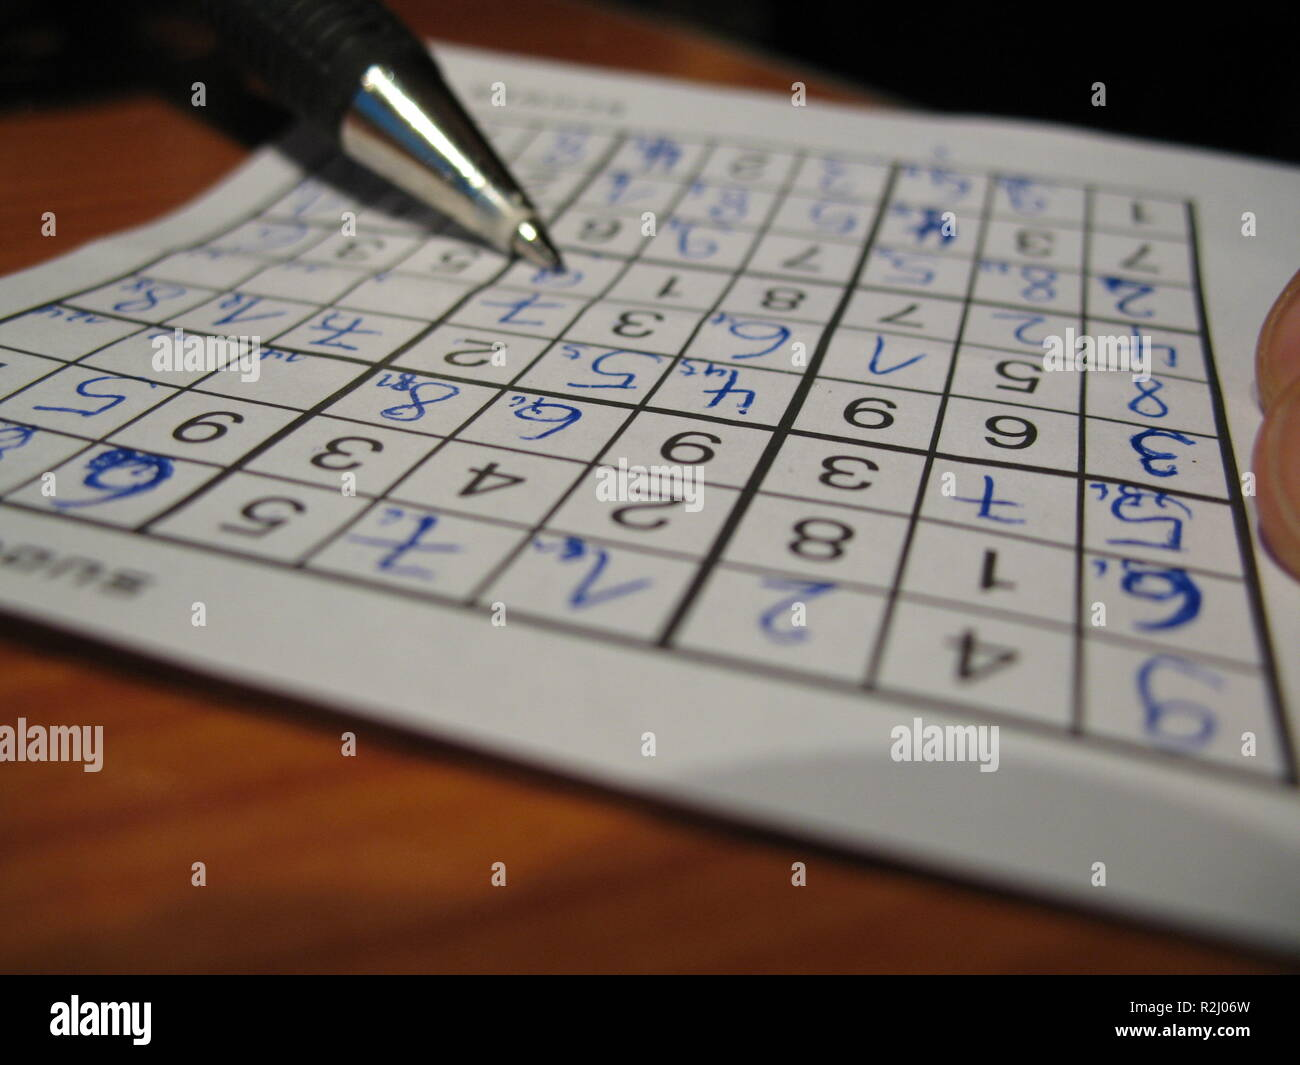 Sudoku Free Stock Photos & Sudoku Free Stock Images - Alamy